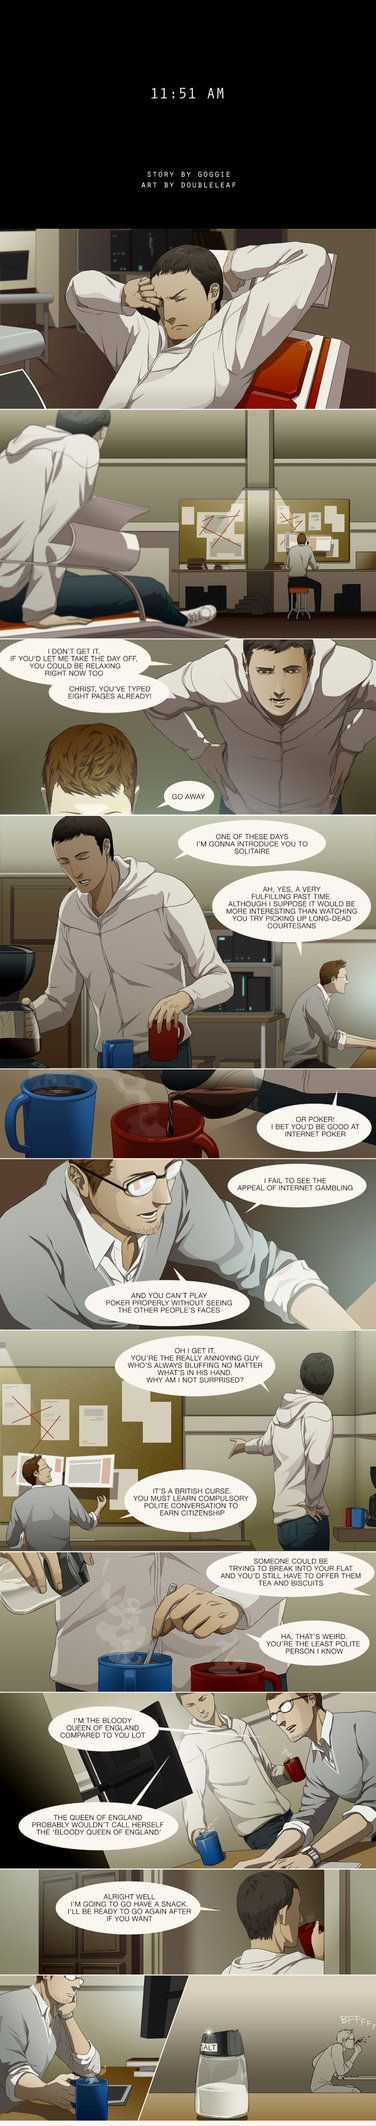 11:51 AM by *doubleleaf on deviantART  These guys are so freaking hilarious. XD   Burt out in laughter every time I read this. ^^  All cred to doubleleaf